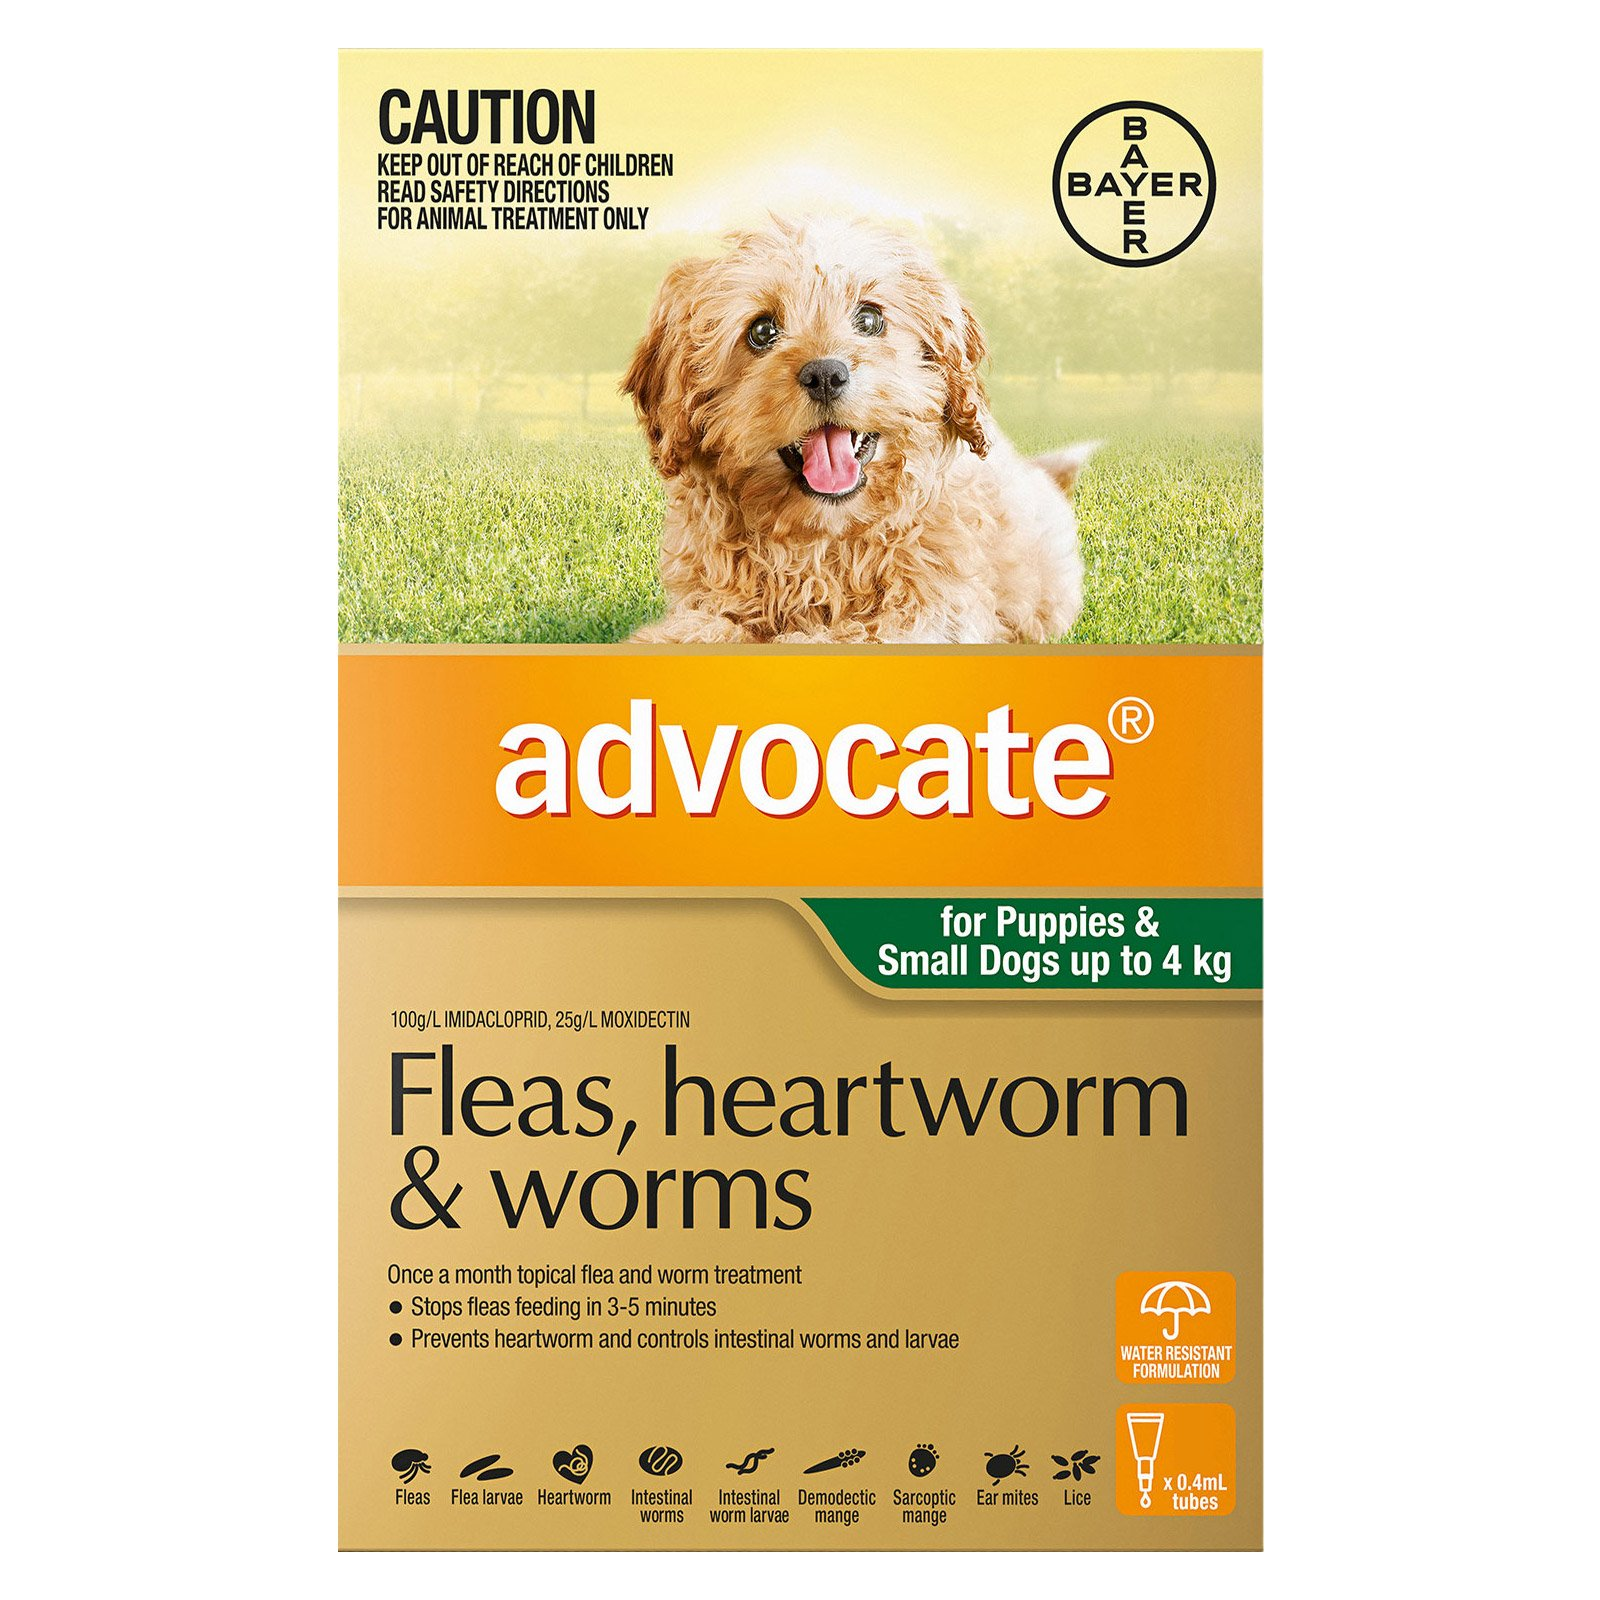 advocate-for-small-dogs-pups-to-4kg-green.jpg